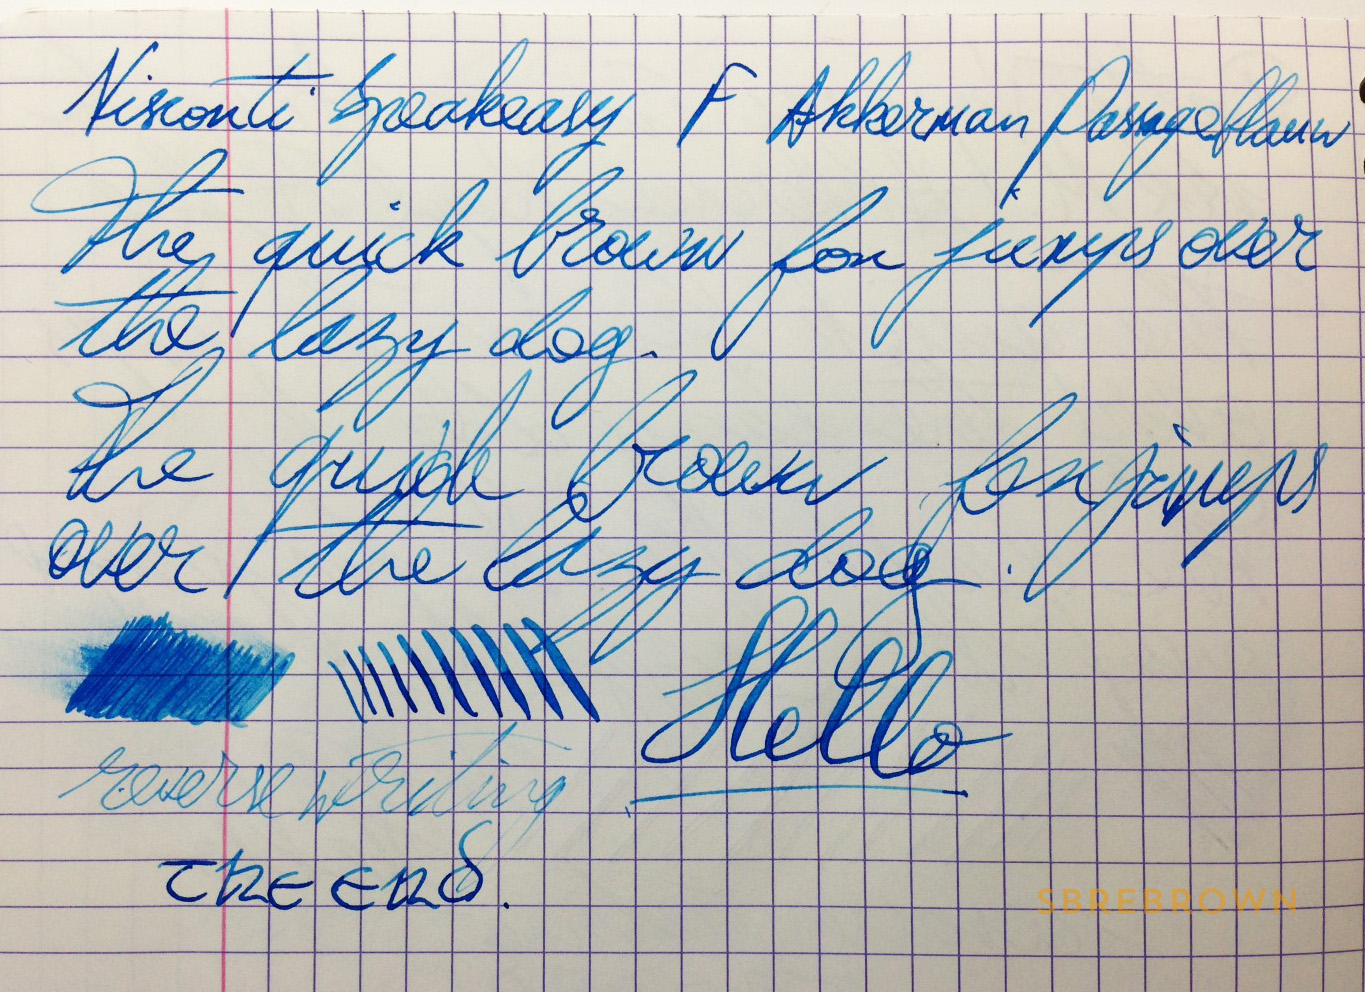 SB. Visconti Speakeasy FP Review (6)